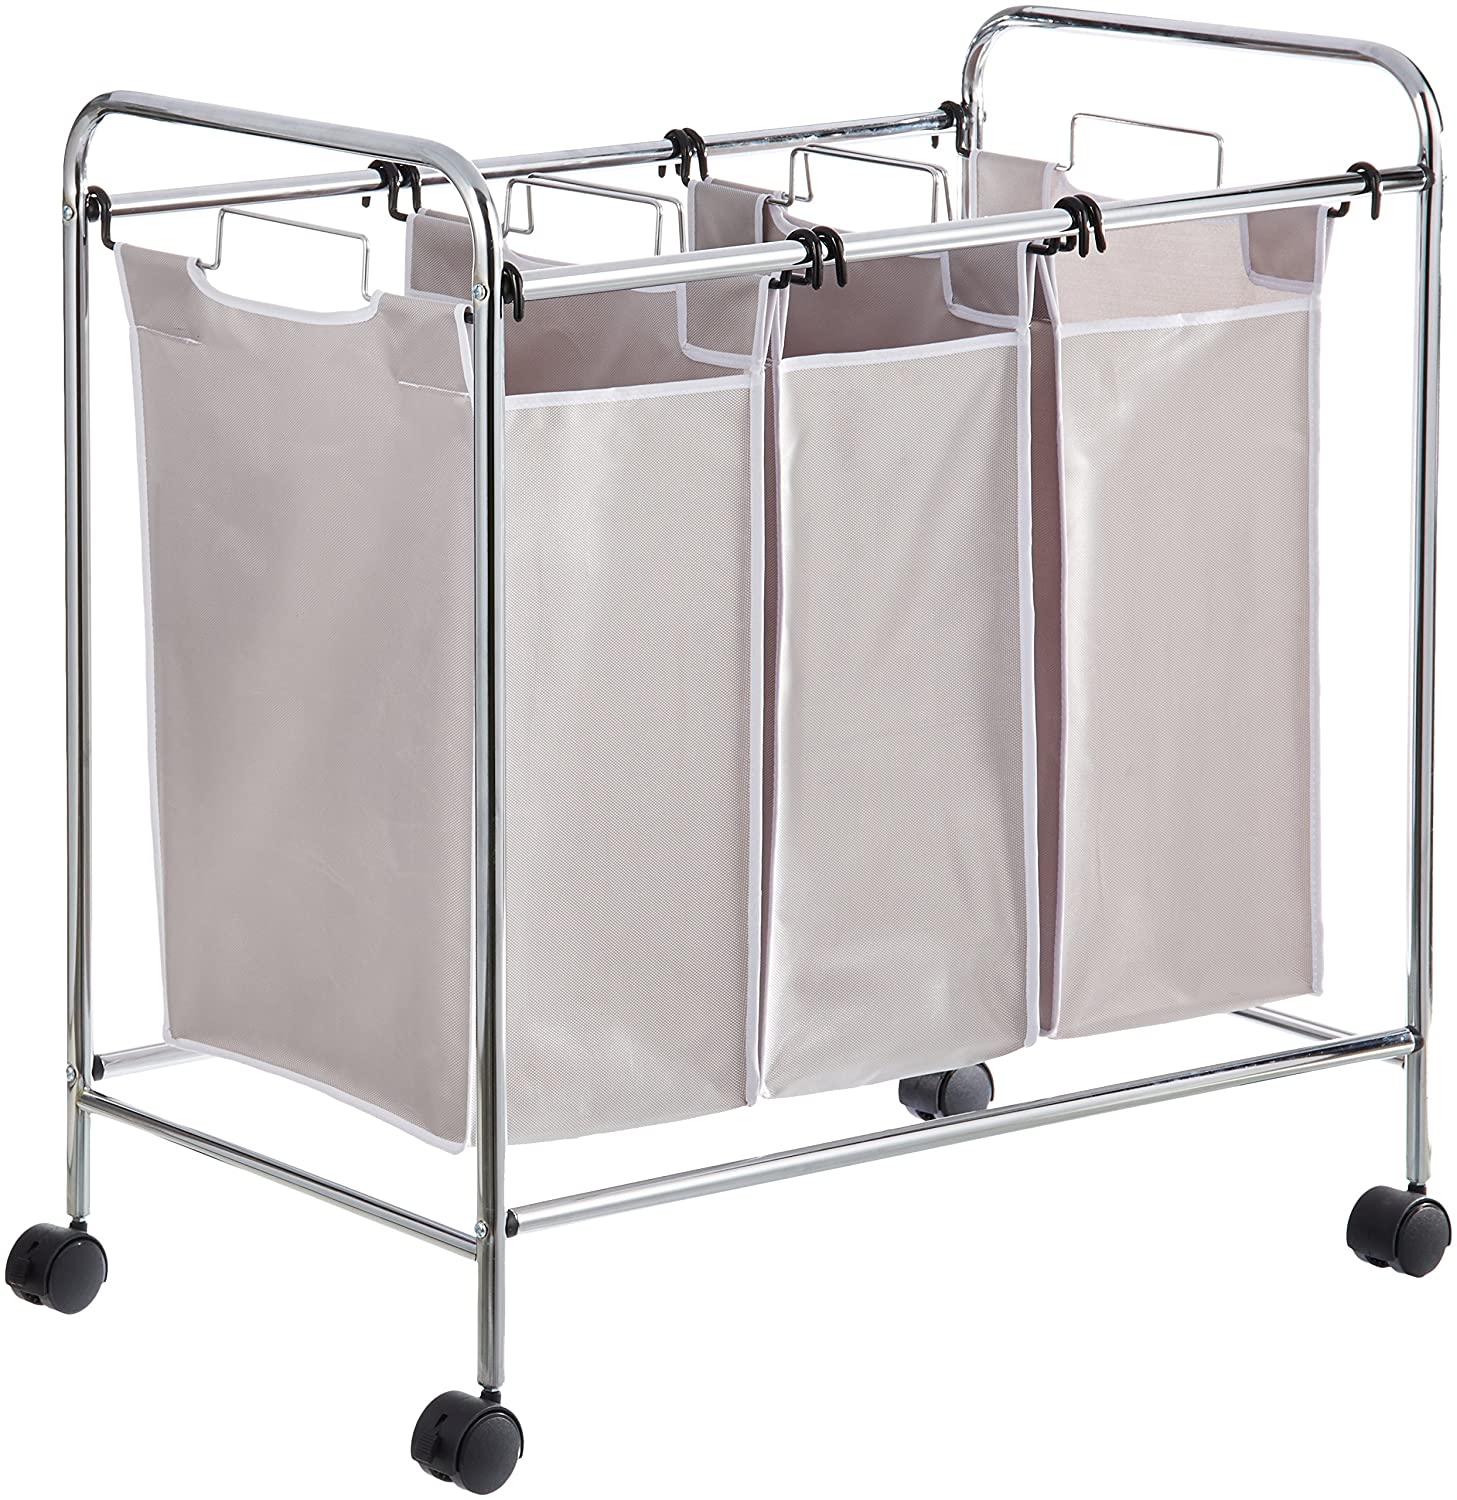 Wheeled Laundry Hampers Good Gifts For Senior Citizens